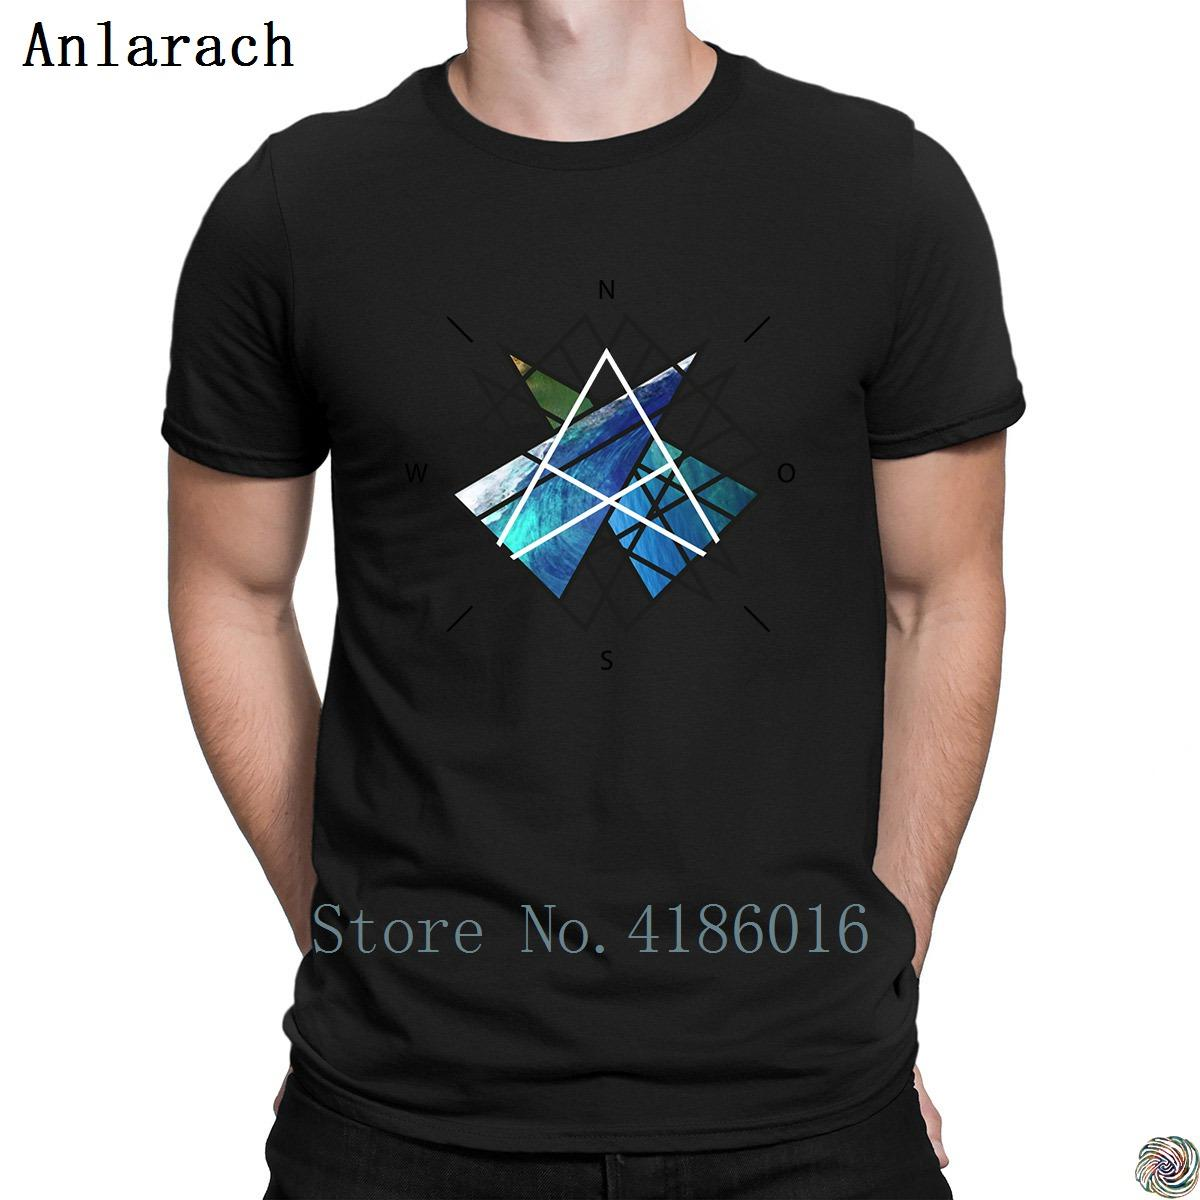 3D Printed T-Shirts Compass Rose Short Sleeve Tops Tees